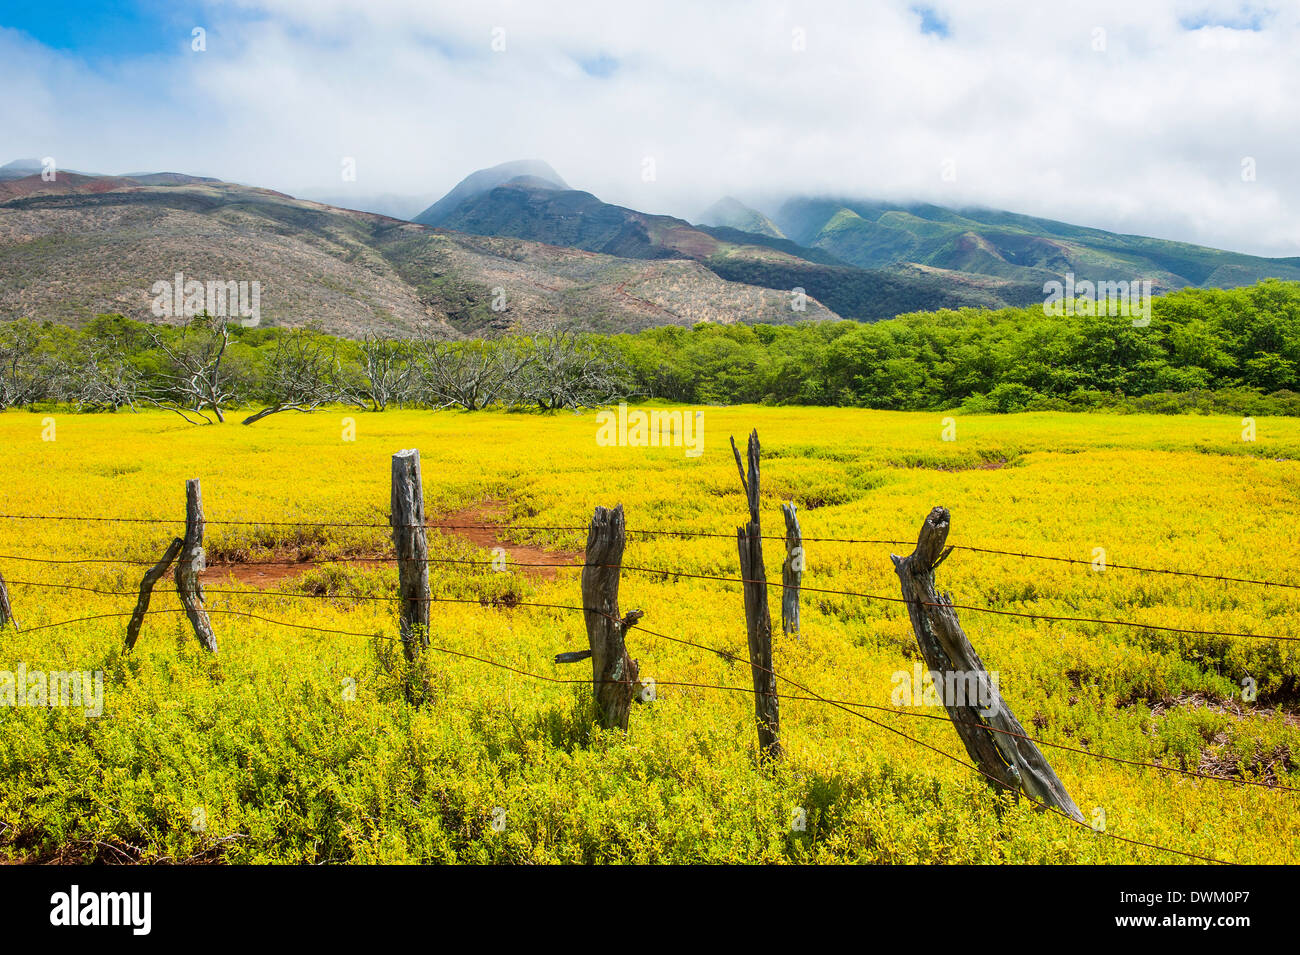 Fenced field of yellow flowers, Island of Molokai, Hawaii, United States of America, Pacific - Stock Image